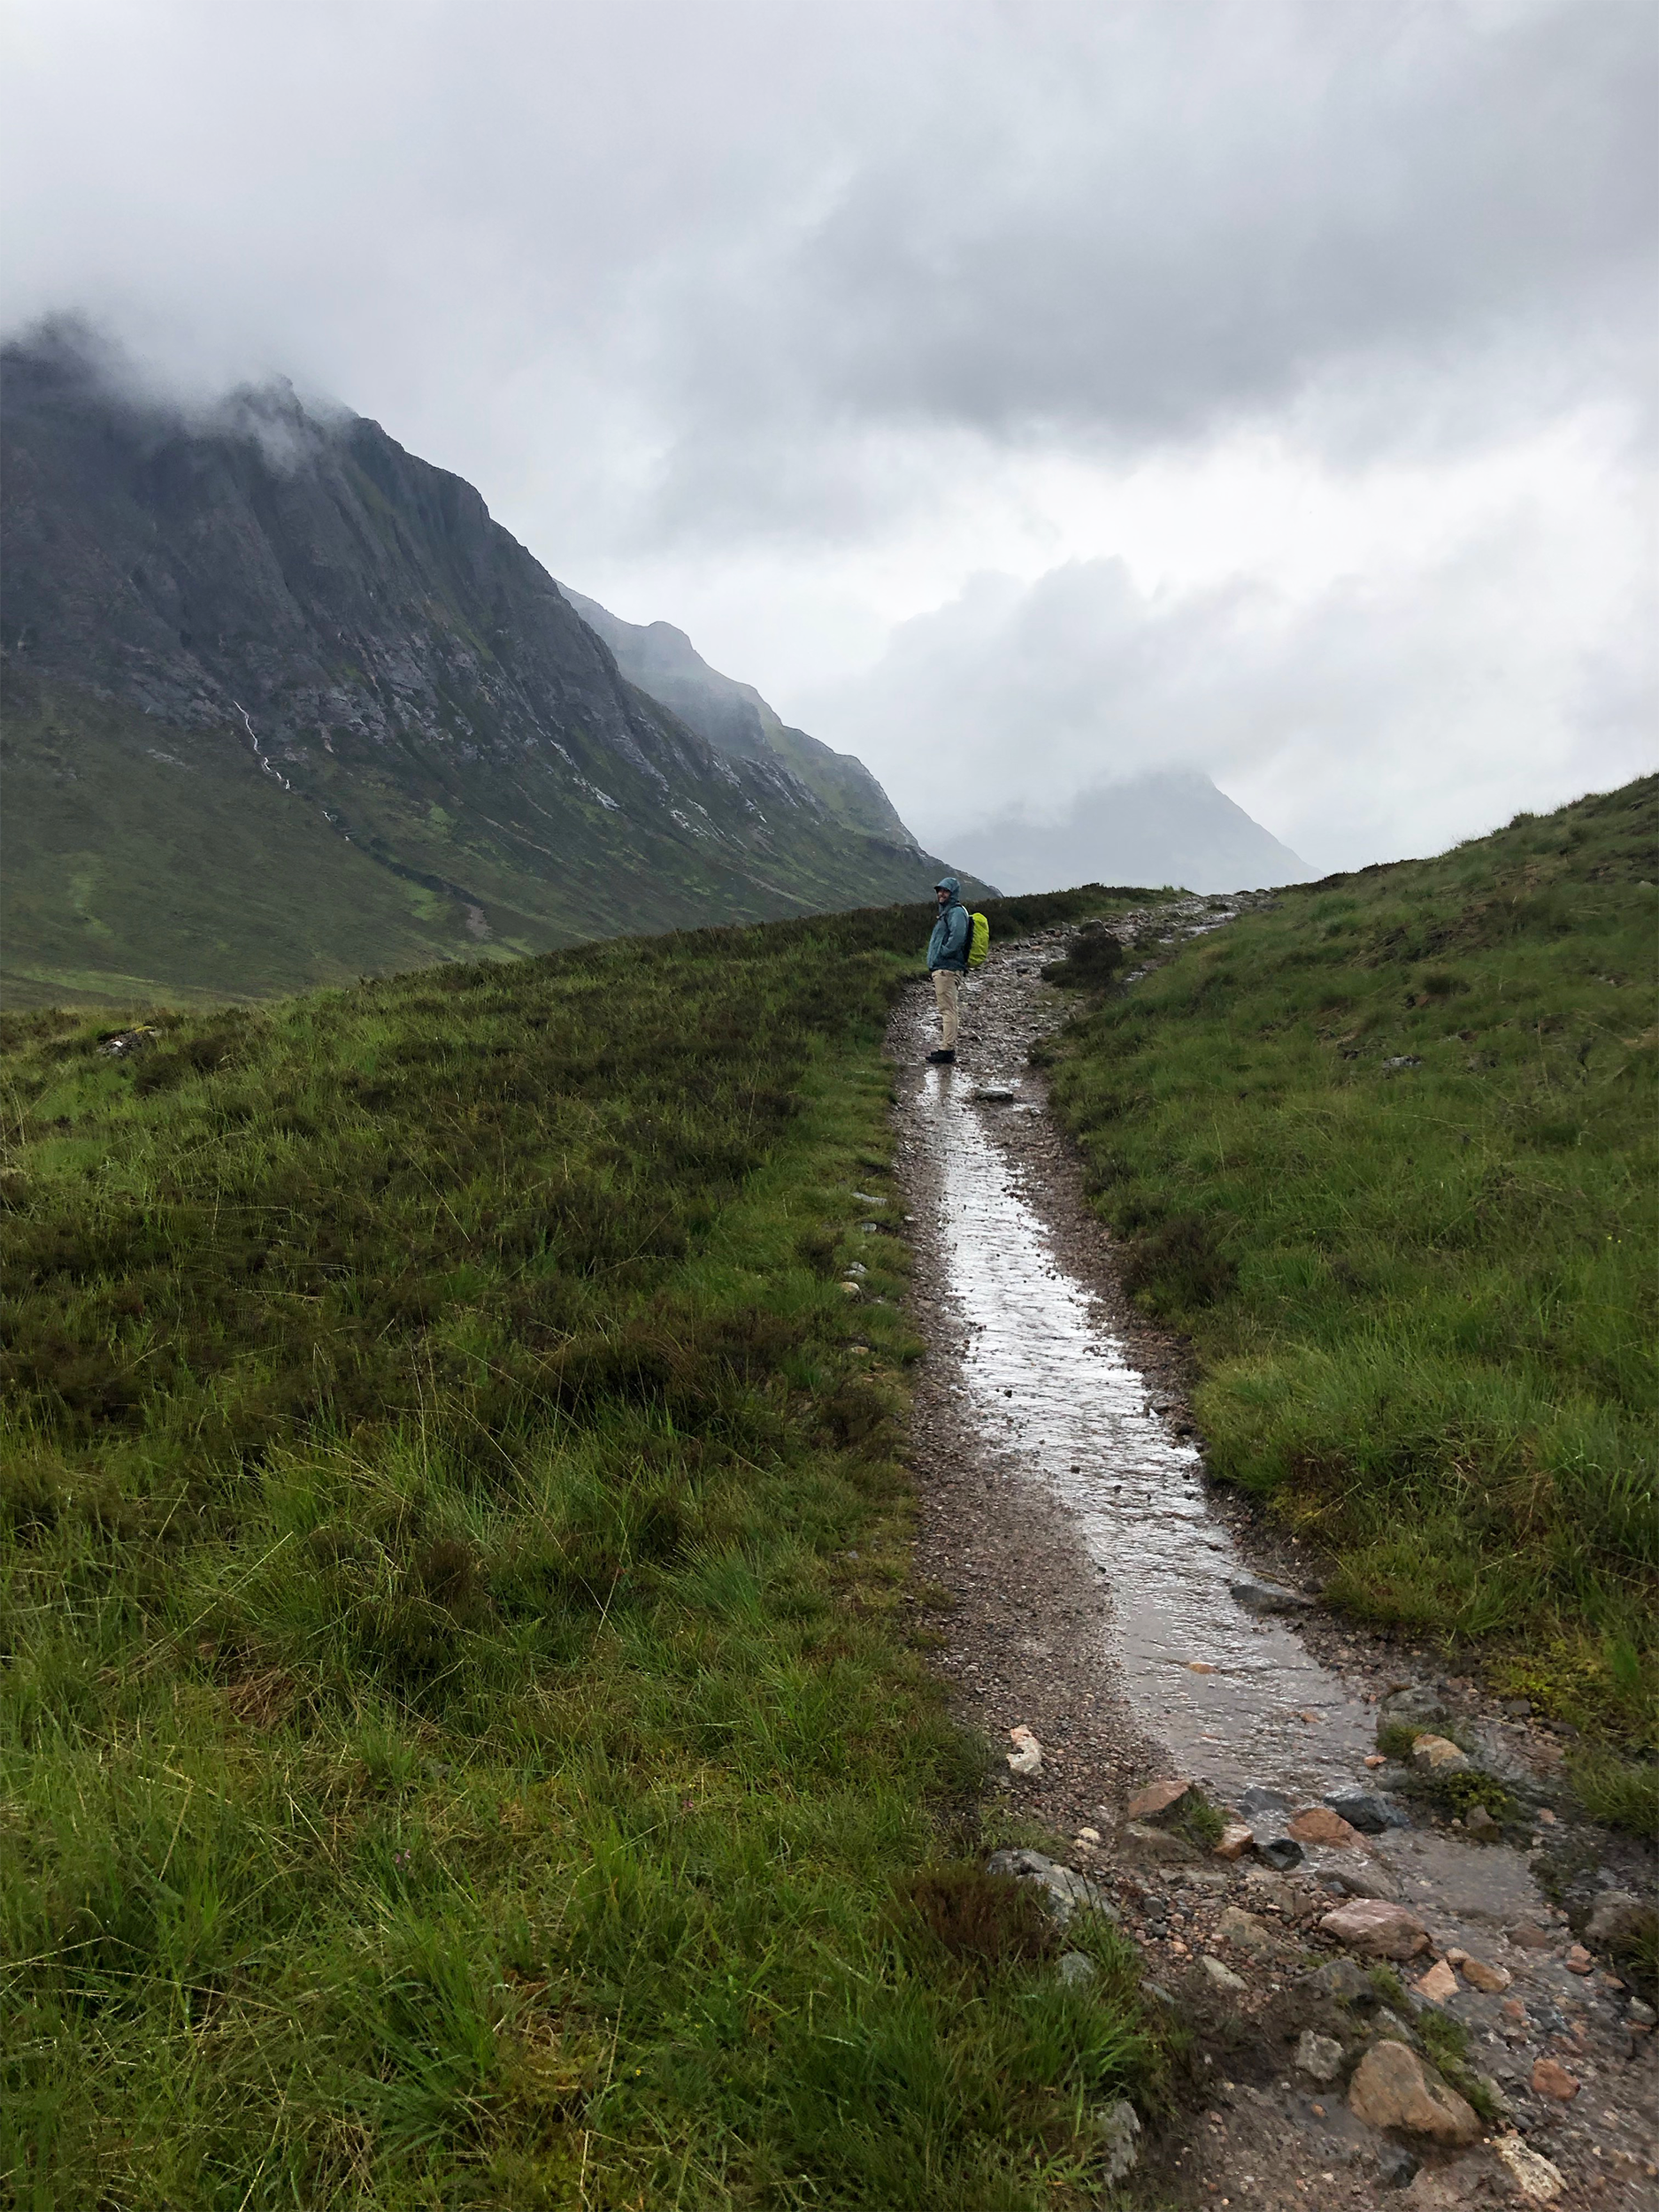 Cold, wet and rainy… the perfect picture of the highlands